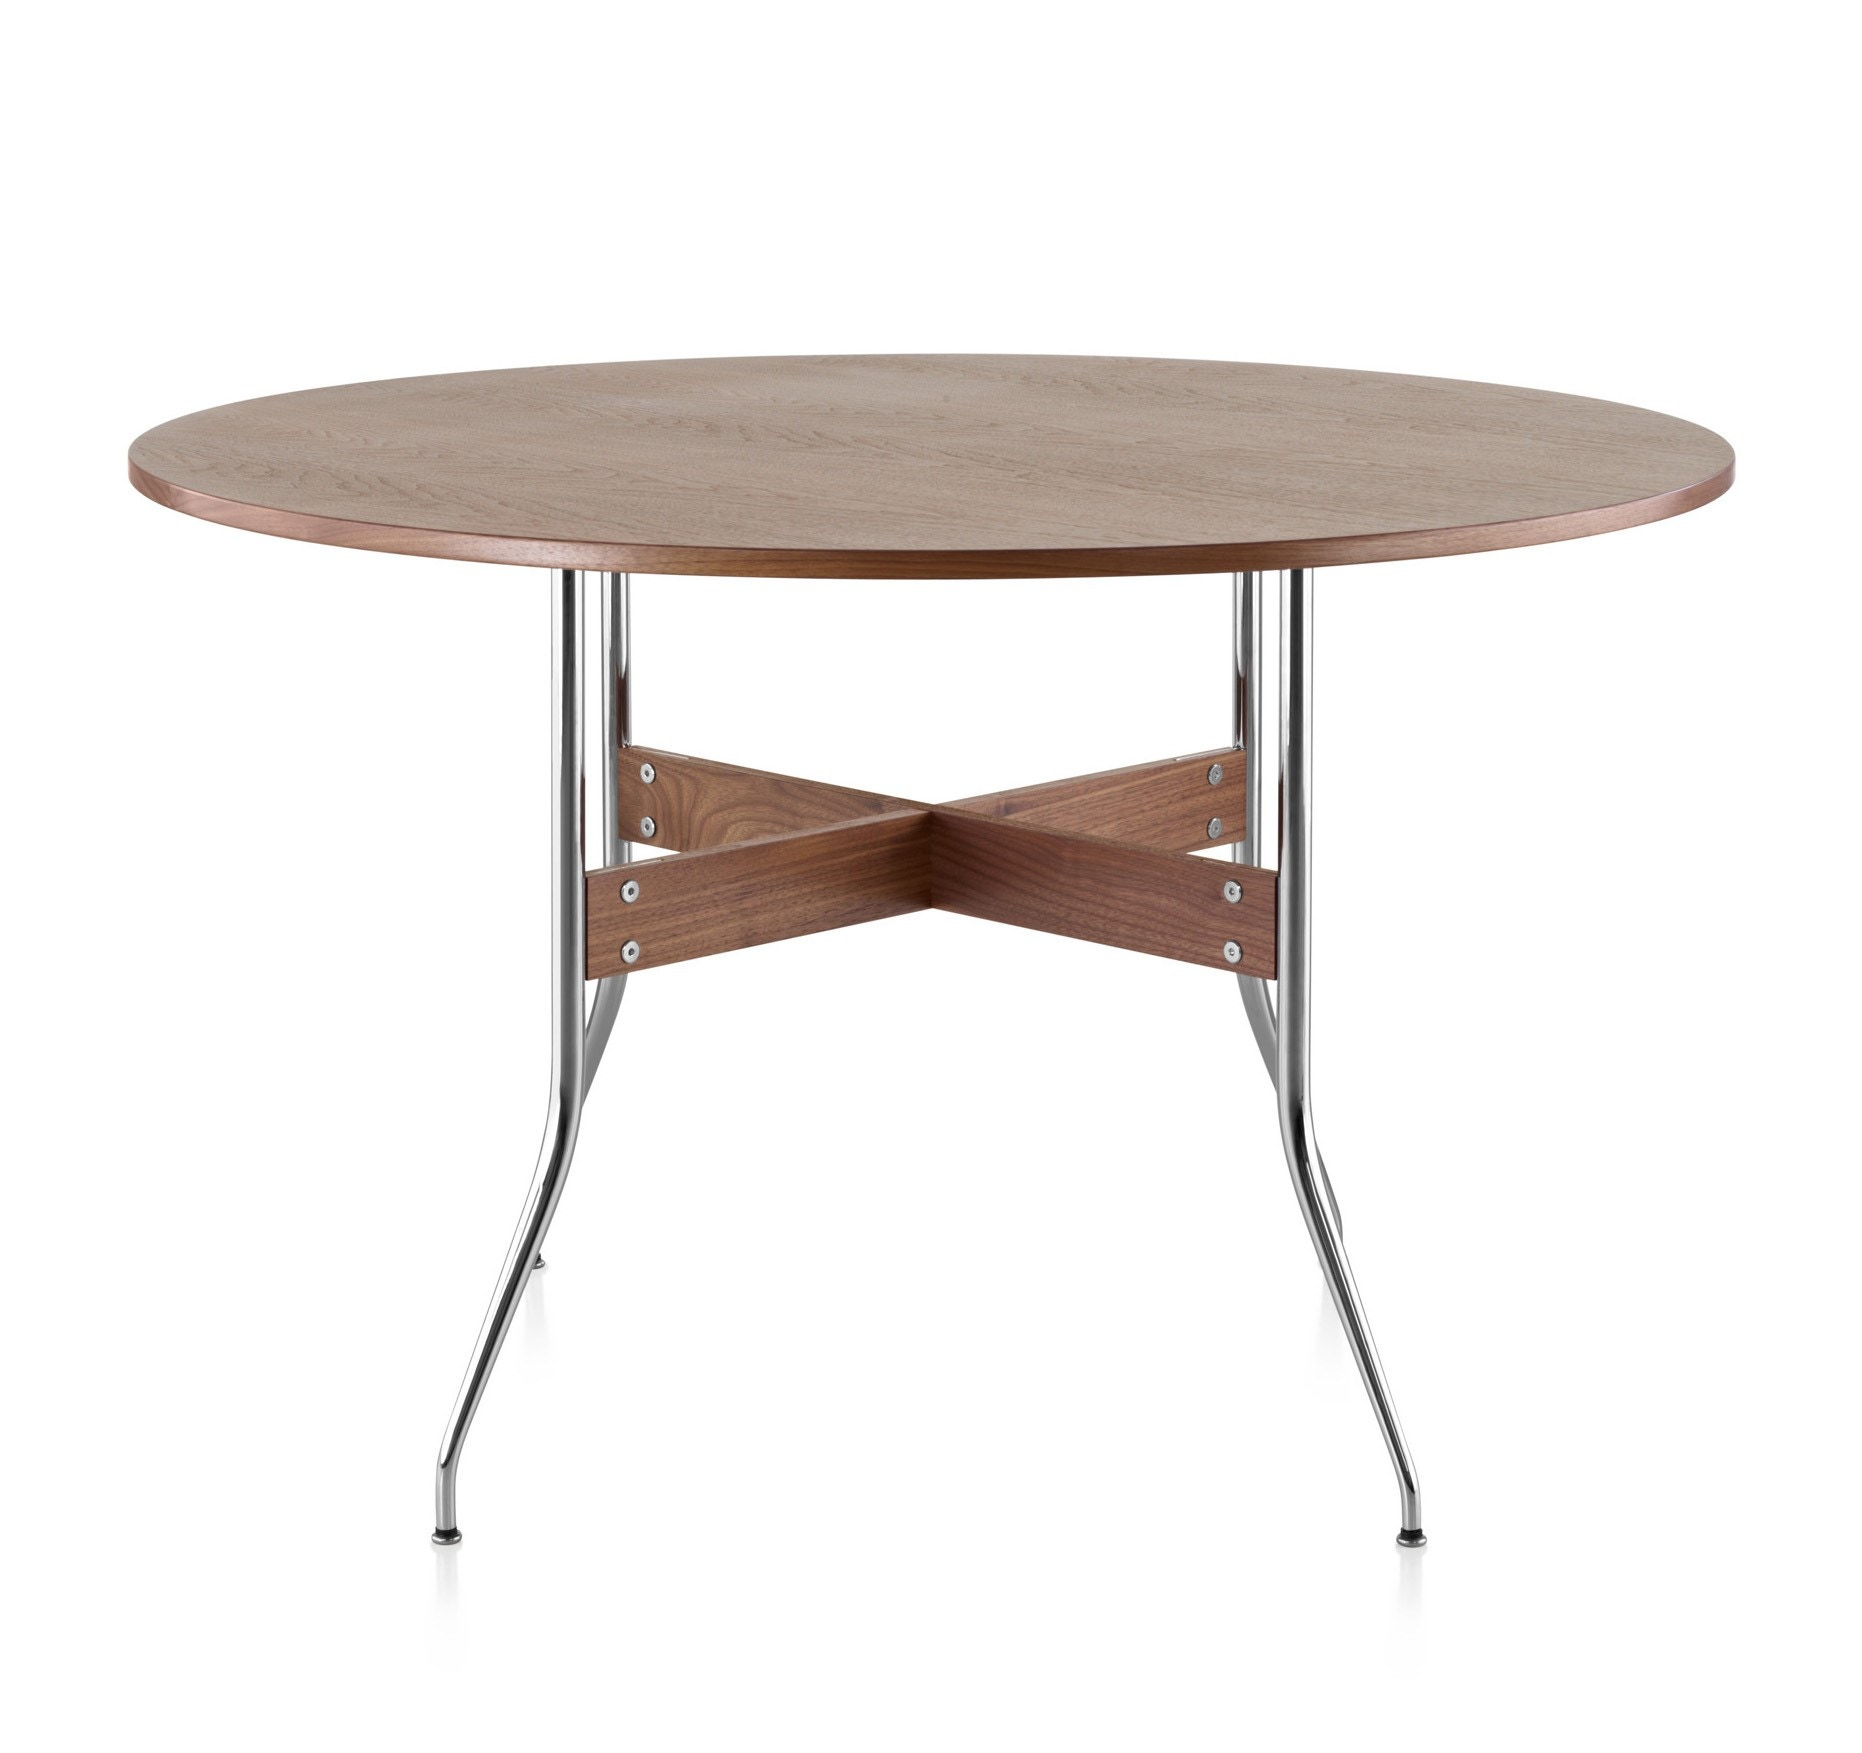 Herman miller nelson swag leg dining table round gr shop for One leg dining table